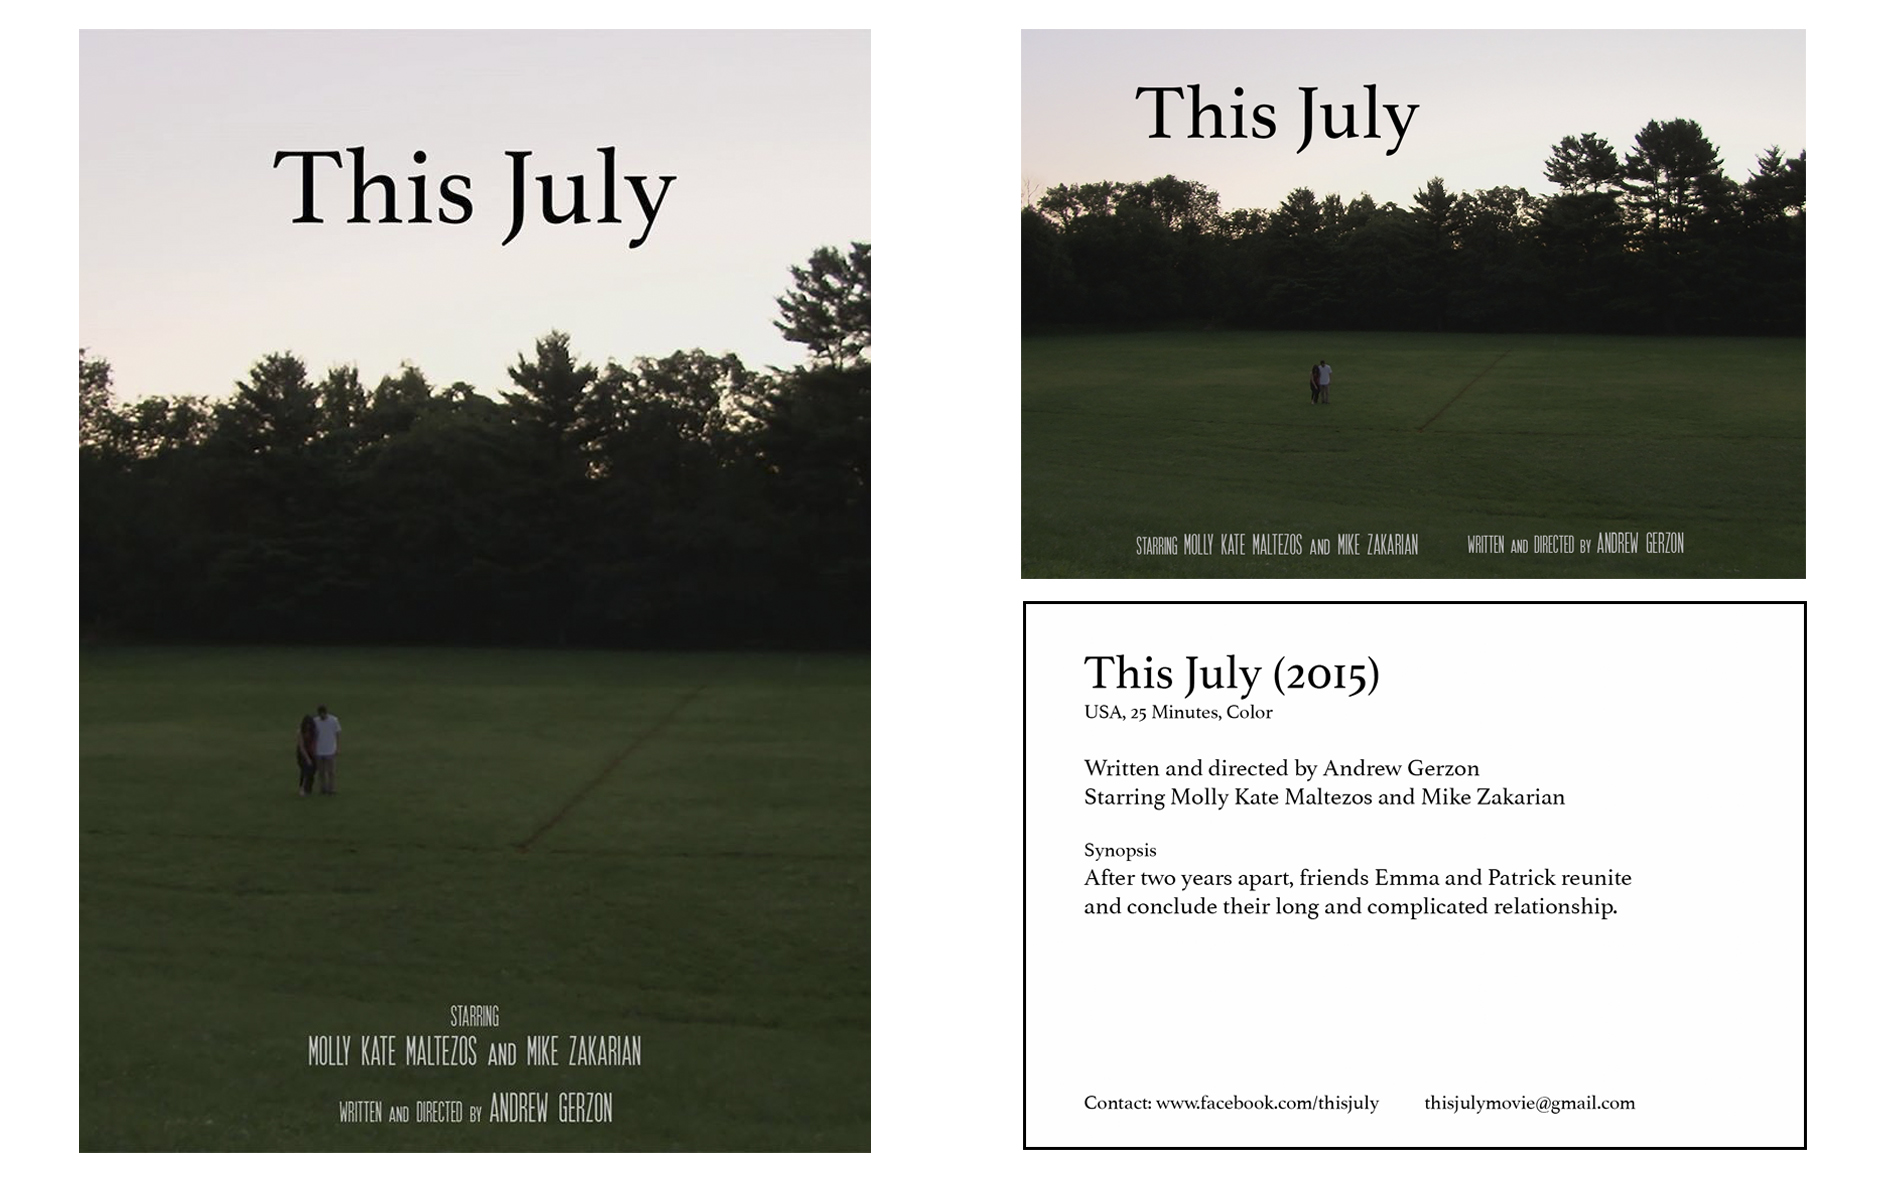 This July Movie Poster/ Postcard, 2016